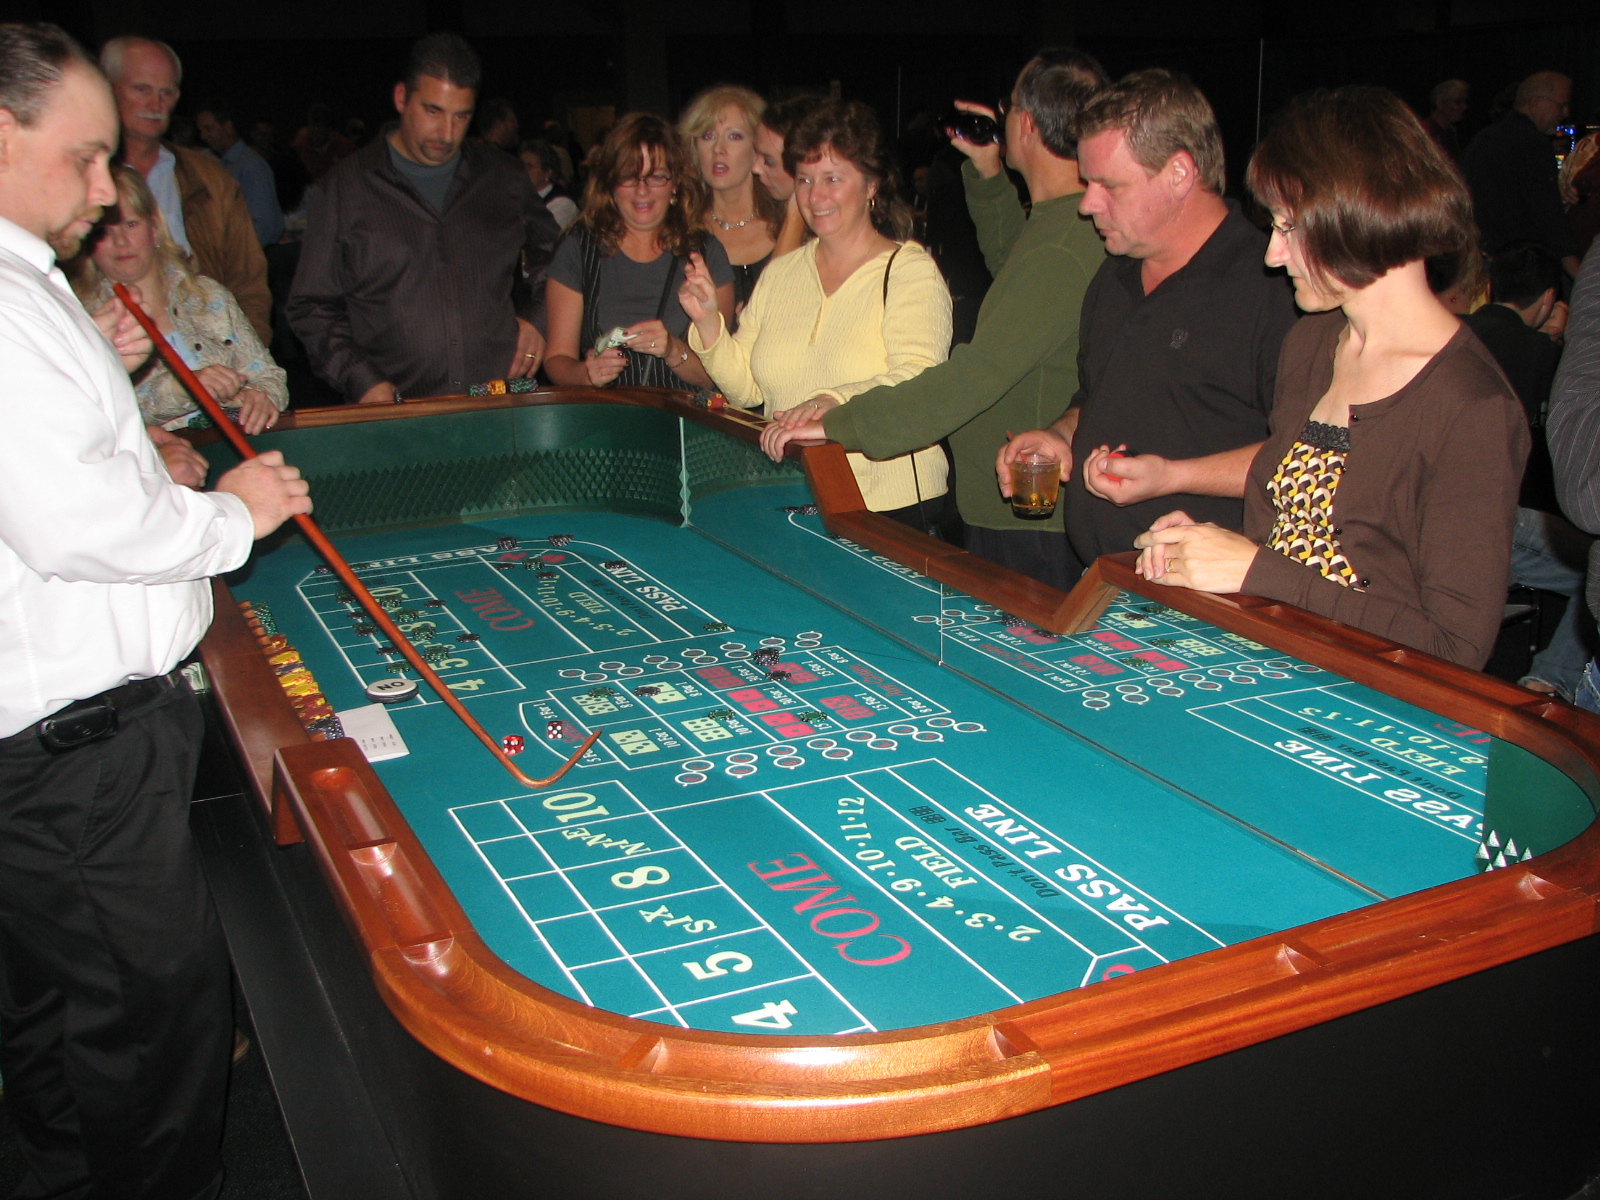 How to win big money playing craps